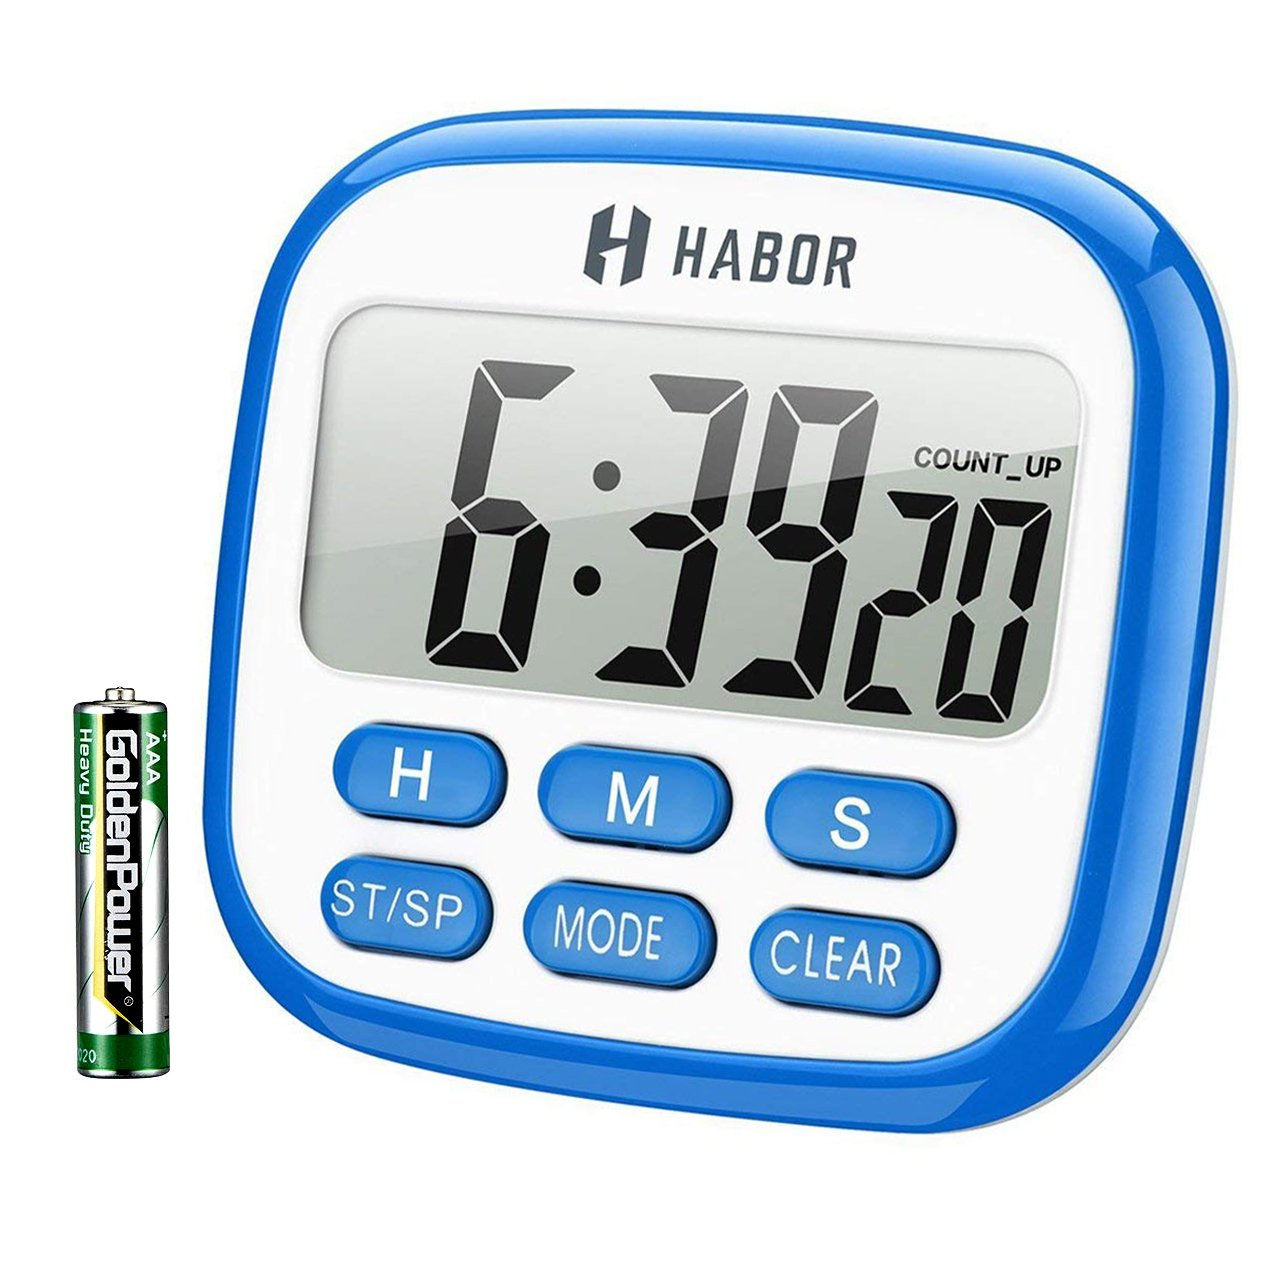 Habor Digital Kitchen Timer, Cooking Timer, Large Display, Strong Magnet  Back, Loud